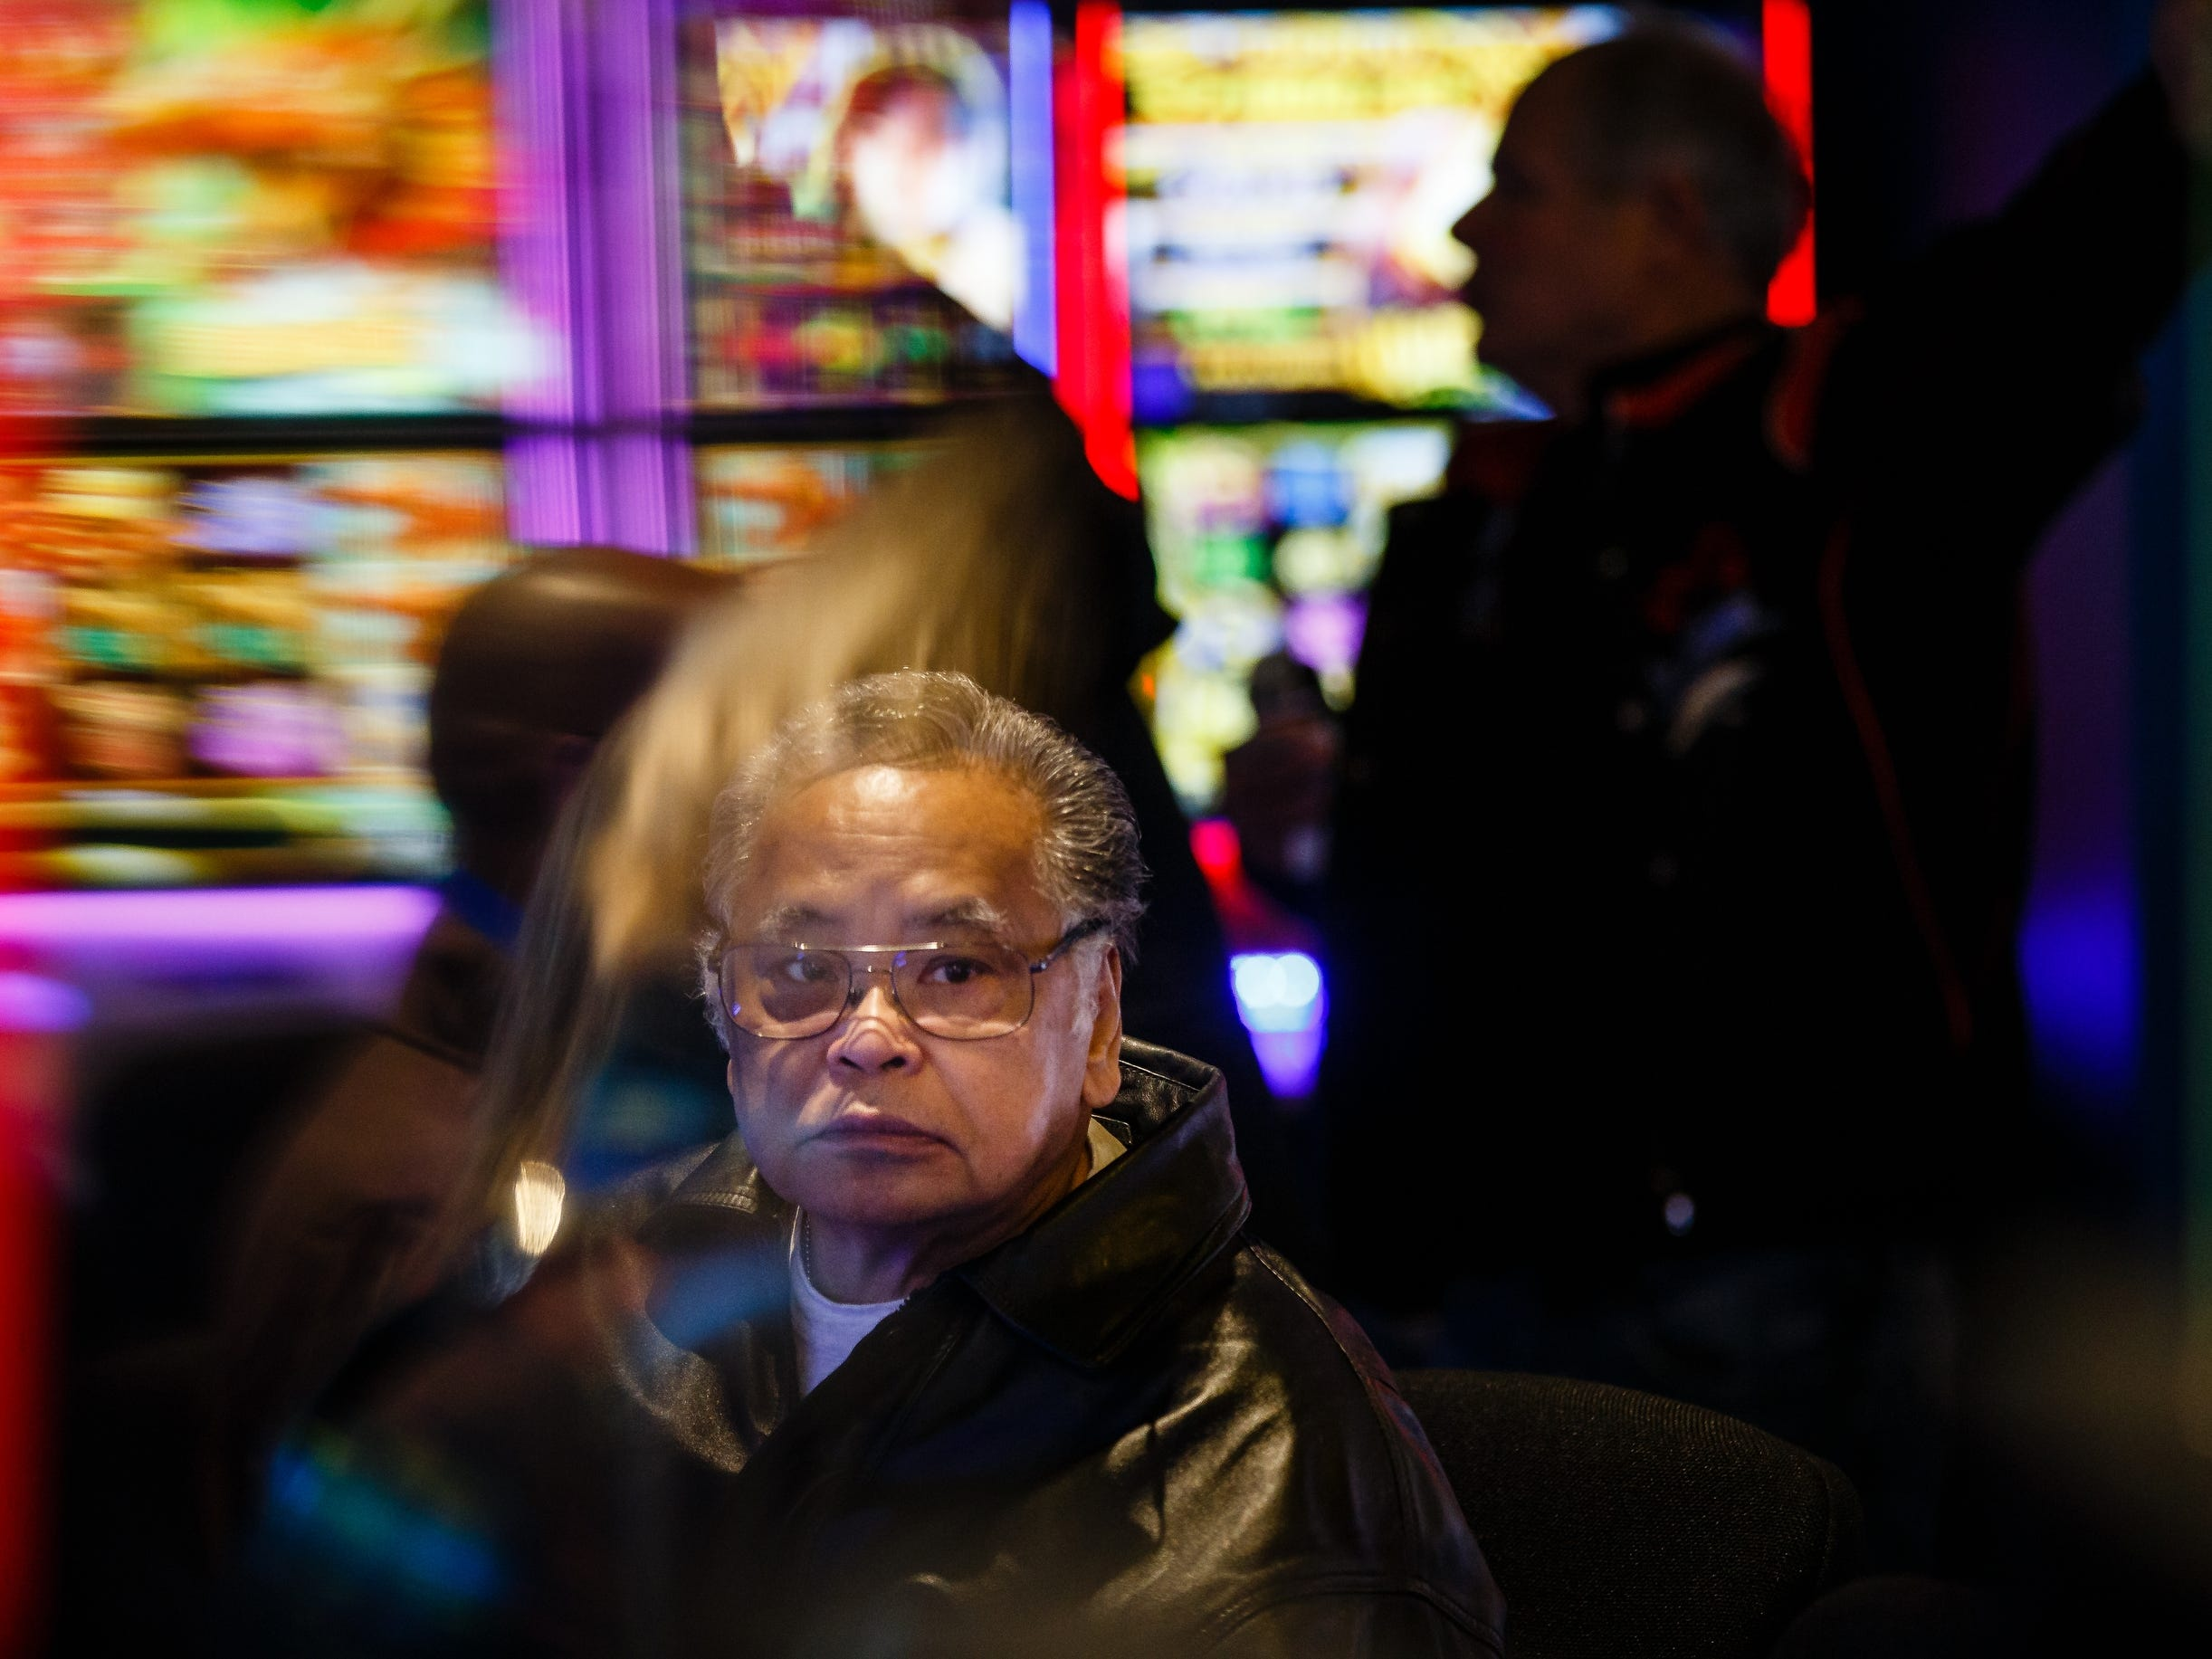 Luis Fortun of Omaha plays a slot machine during the grand opening of The Ponca Tribe of Nebraska's Prairie Flower Casino on Thursday, Nov. 1, 2018, in Carter Lake. Both Iowa and Nebraska officials have tried to block the casino in federal court Ð Iowa because of competition with other Iowa casinos and Nebraska because the casino sits just miles away from Omaha where gambling is illegal.